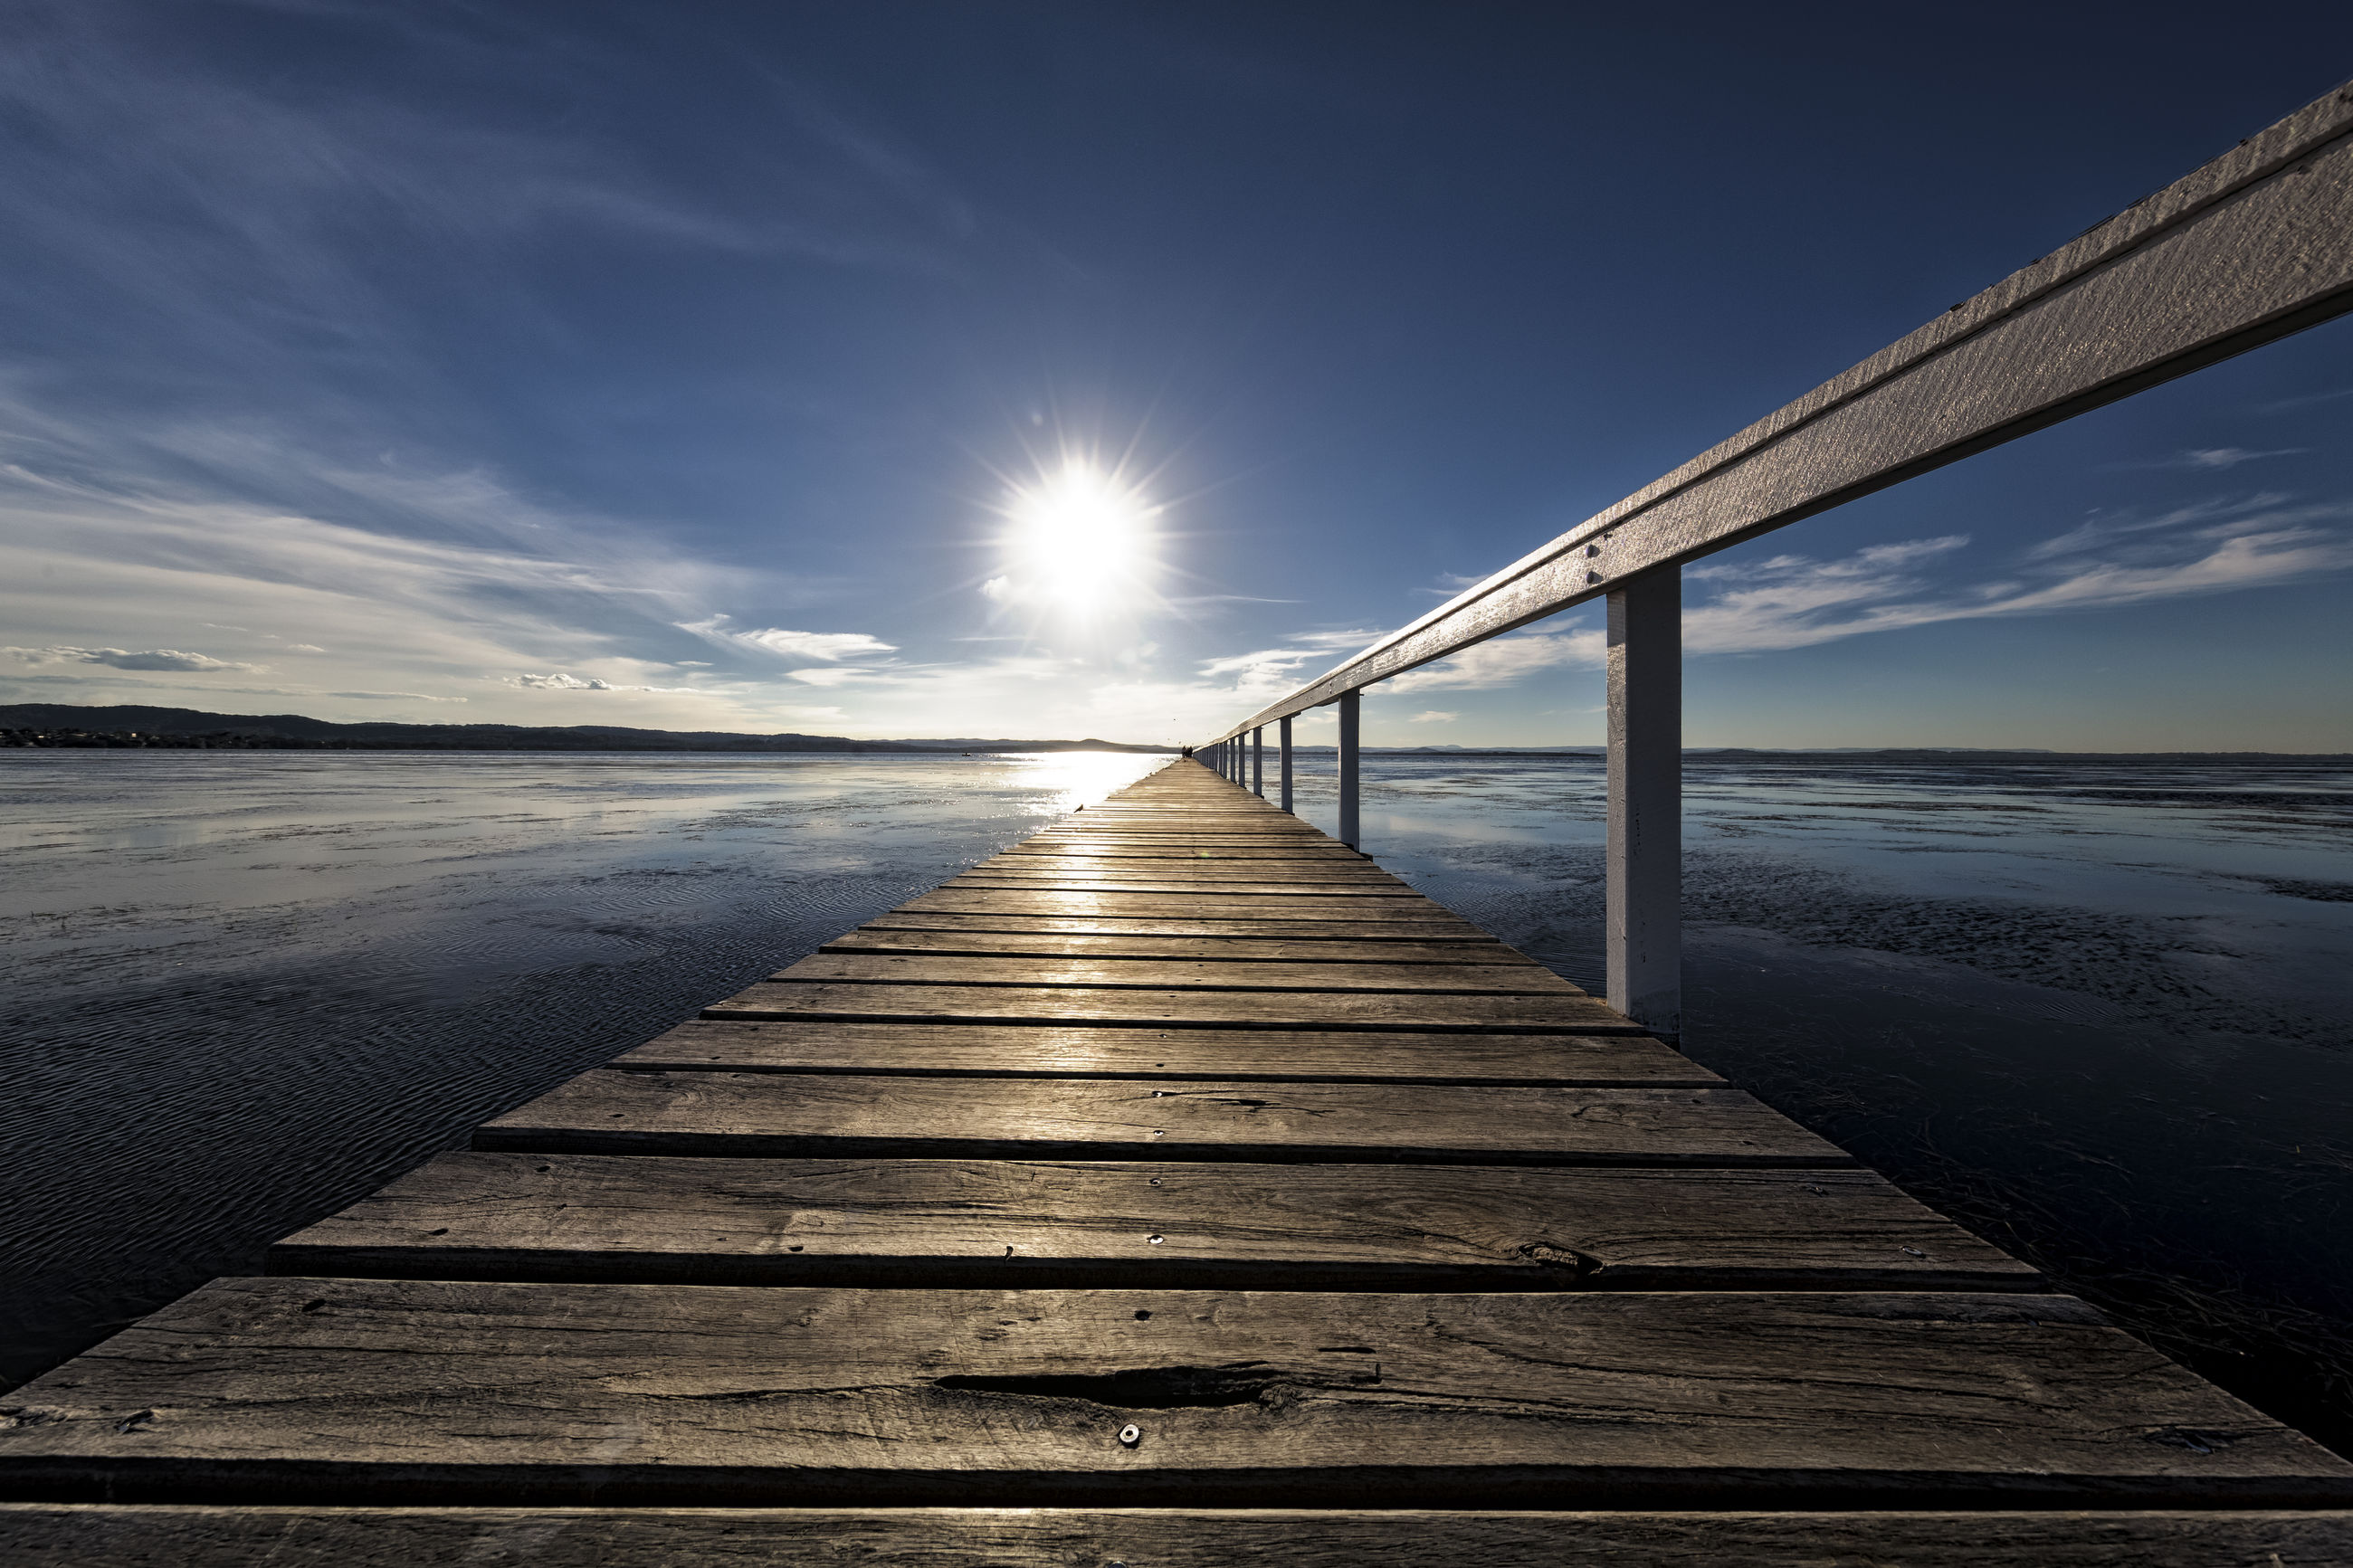 water, sea, pier, sky, sunlight, nature, wood - material, outdoors, beach, scenics, jetty, the way forward, beauty in nature, no people, wood paneling, tranquility, bridge - man made structure, horizon over water, sunset, day